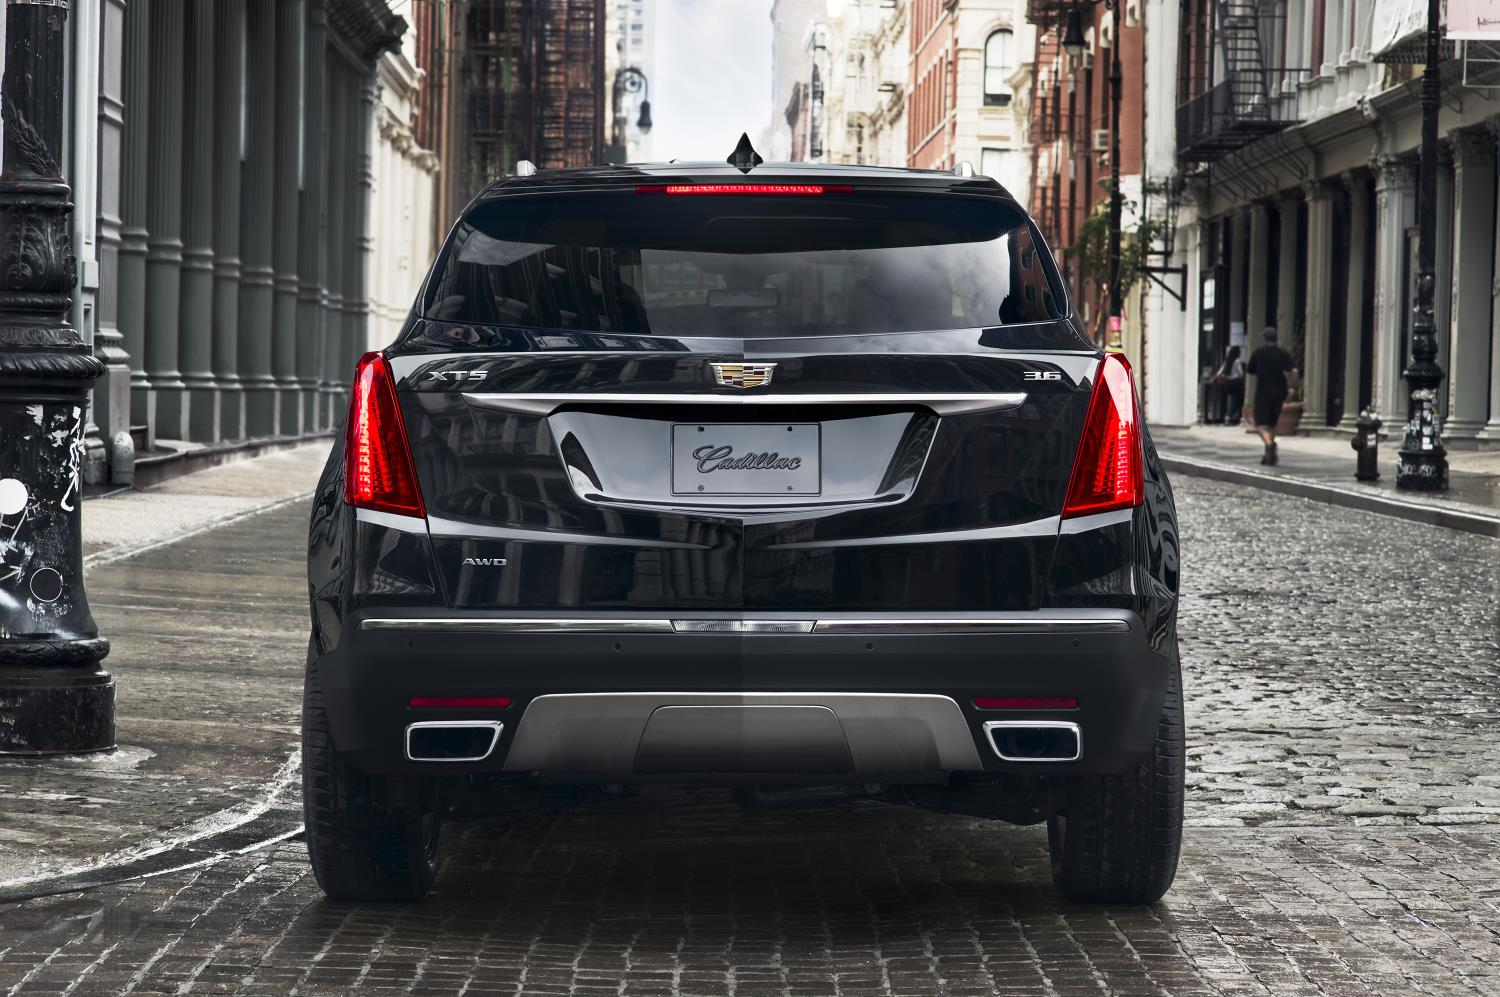 Why Cadillac sells more cars in China than in America